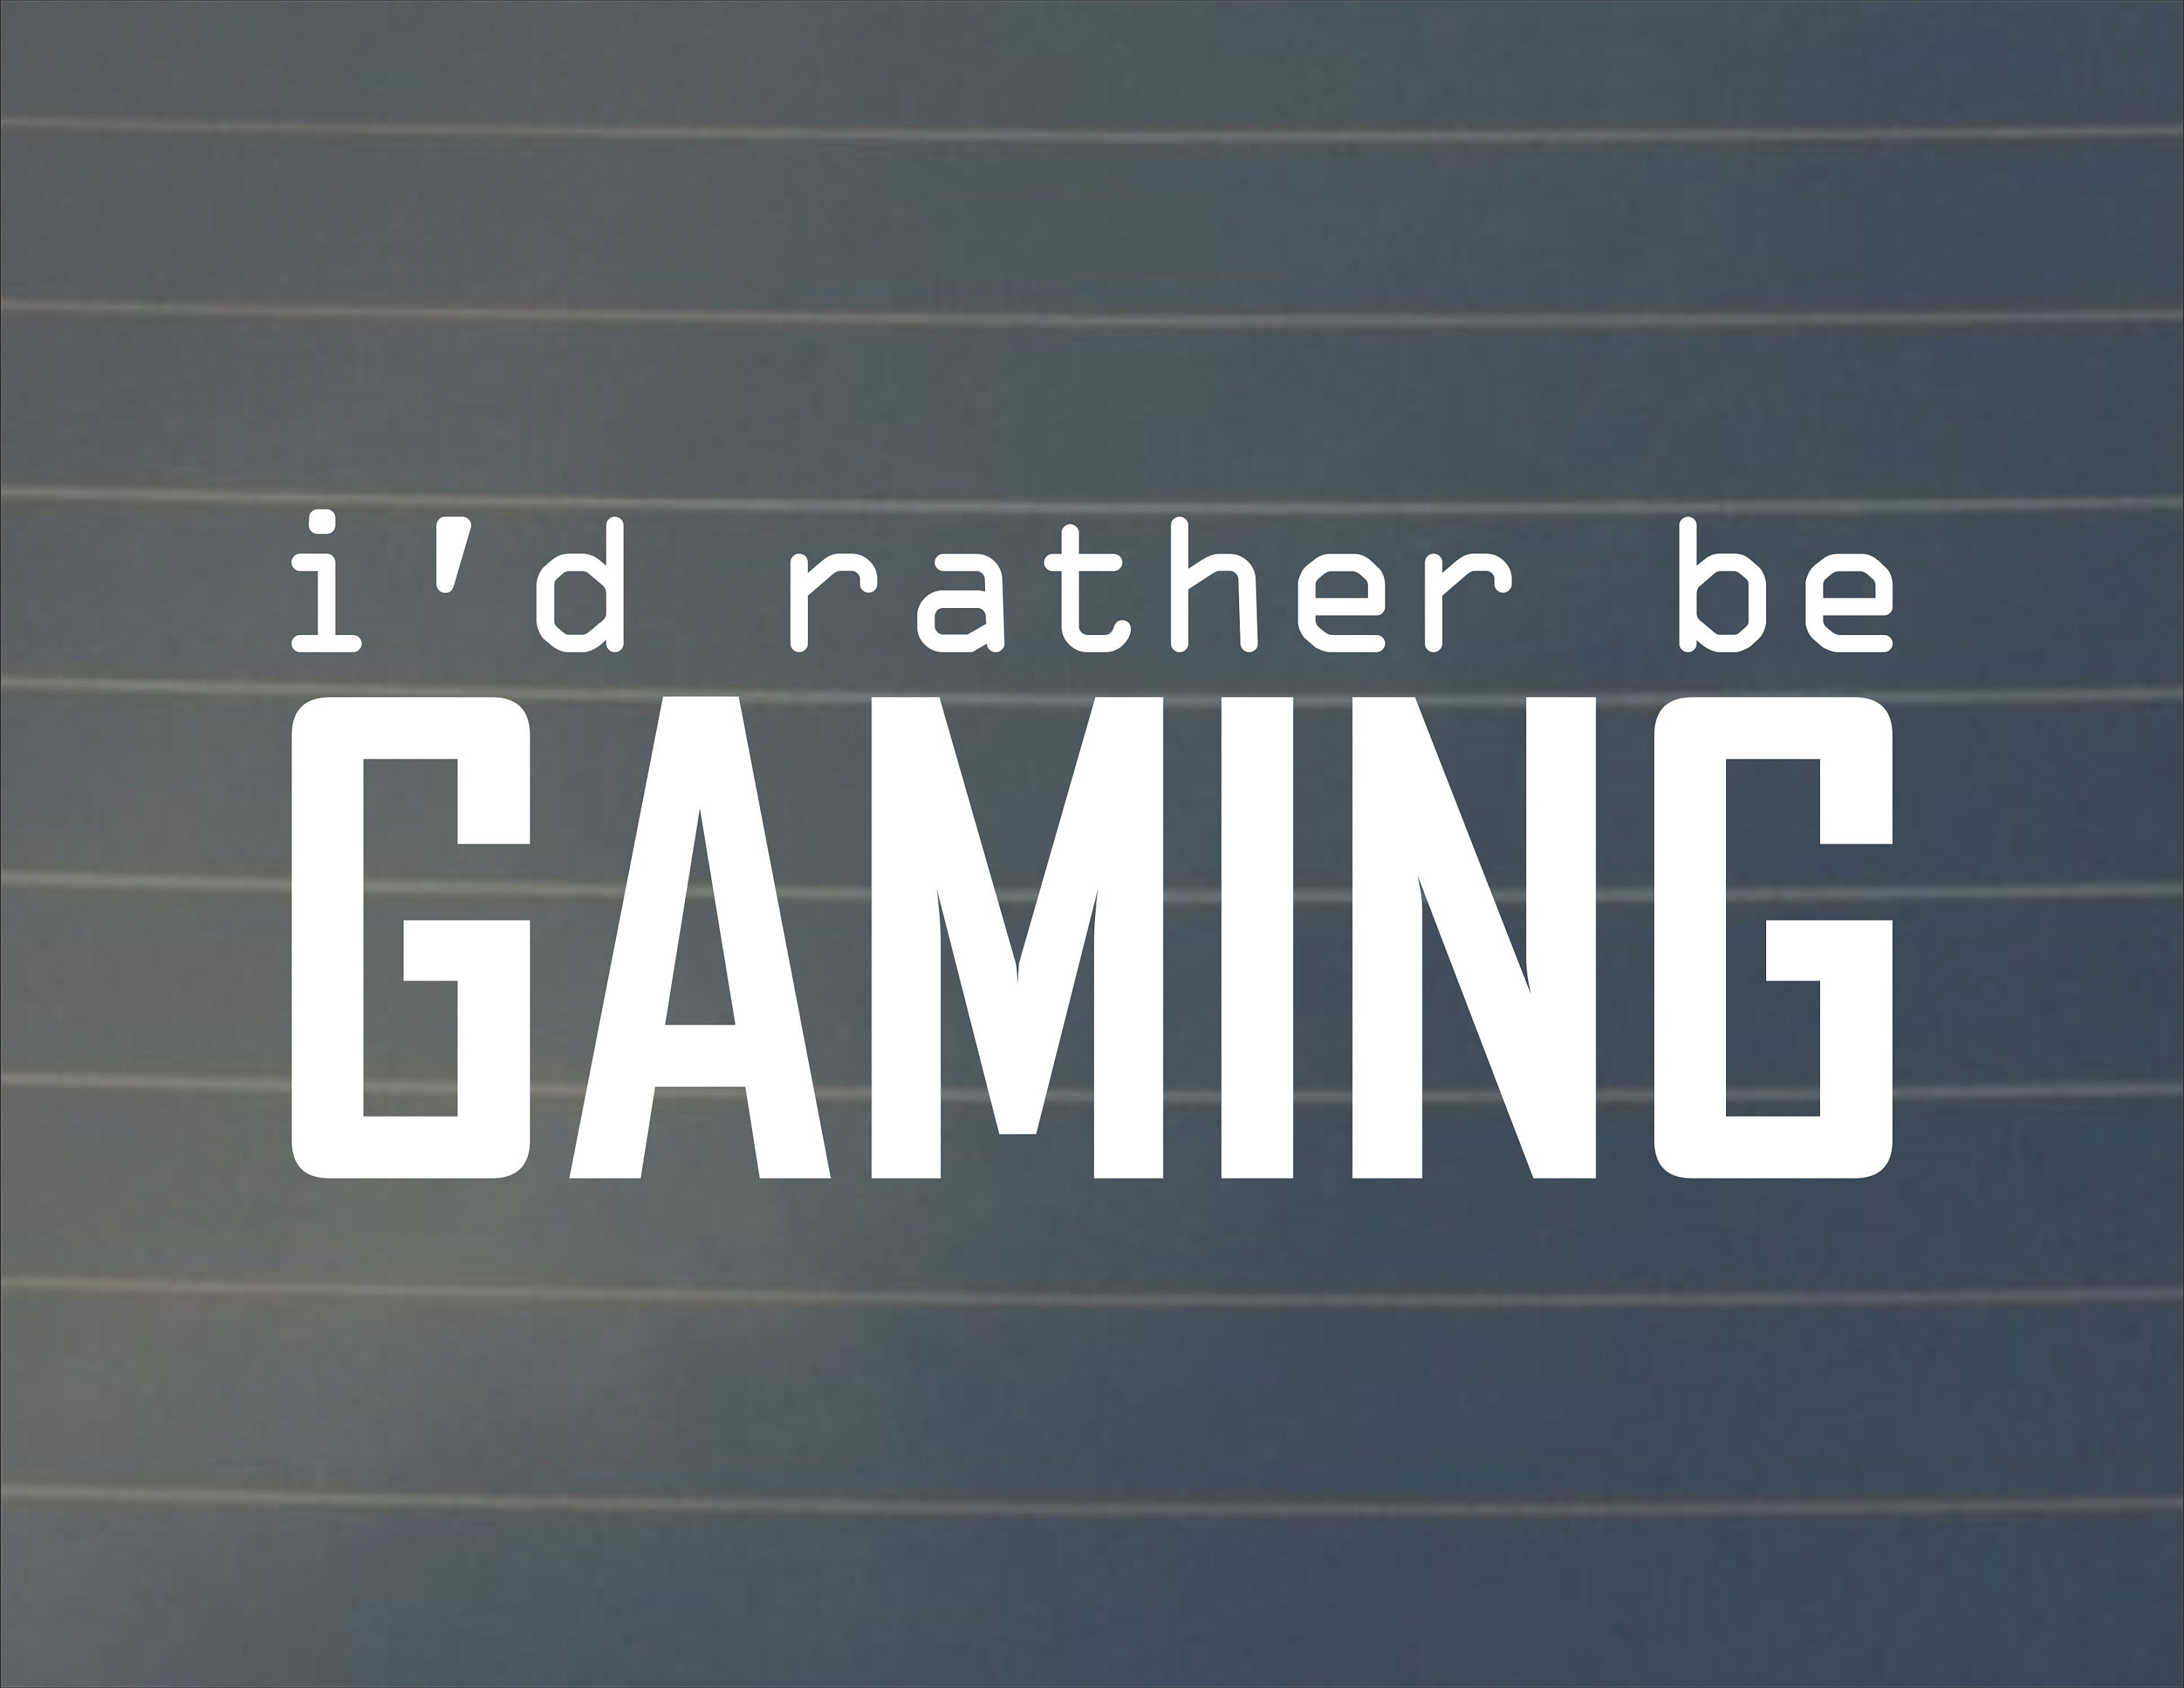 Decal id rather be gaming laptop stickers laptop decals car decals car decal gaming decal gaming sticker gamer decal gamer gifts